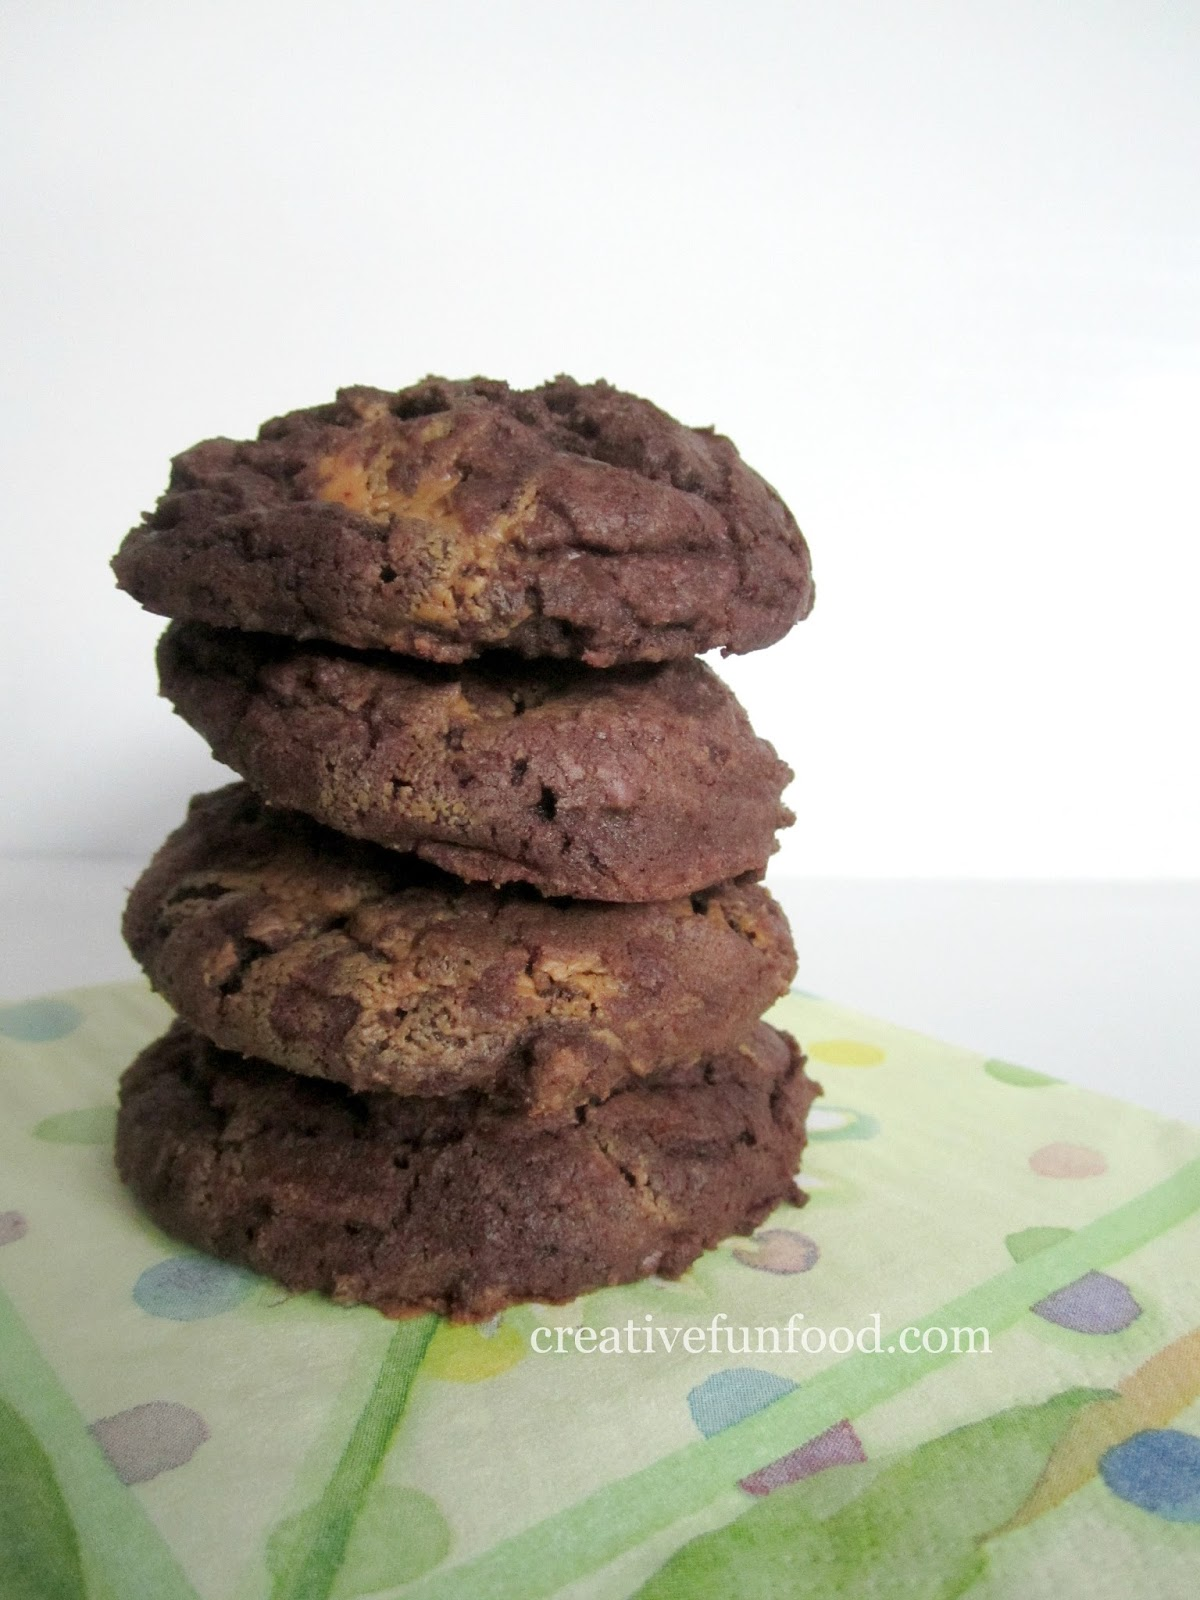 Chocolate Chunk WOWBUTTER Swirl Fudgy Cookies